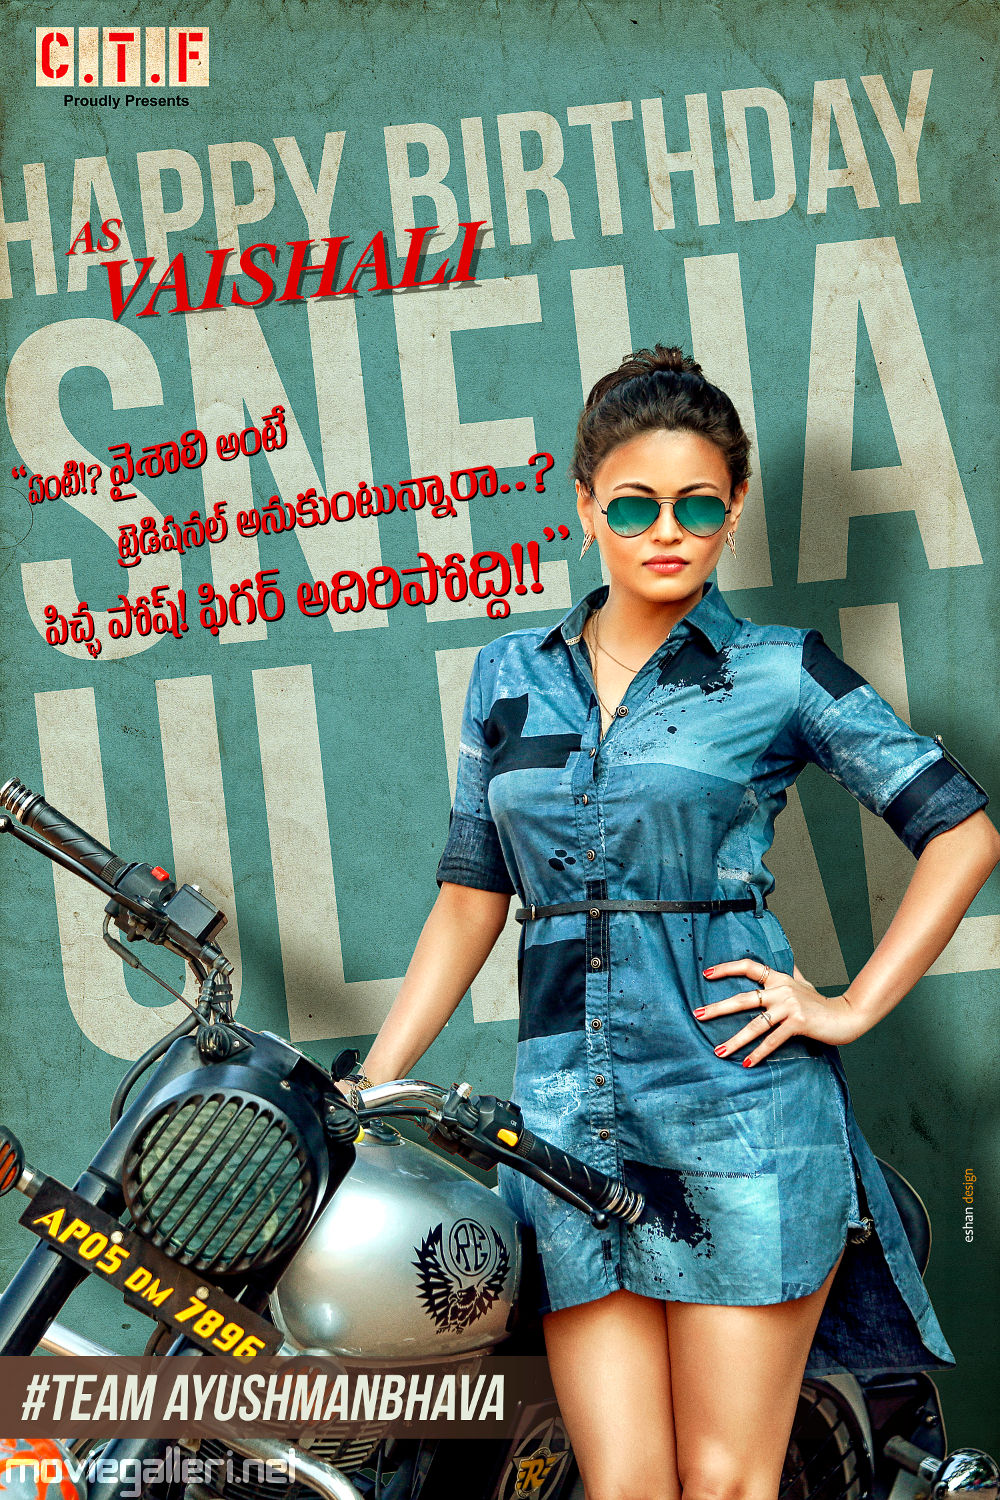 Actress Sneha Ullal Birthday Poster from Ayushman Bhava Movie